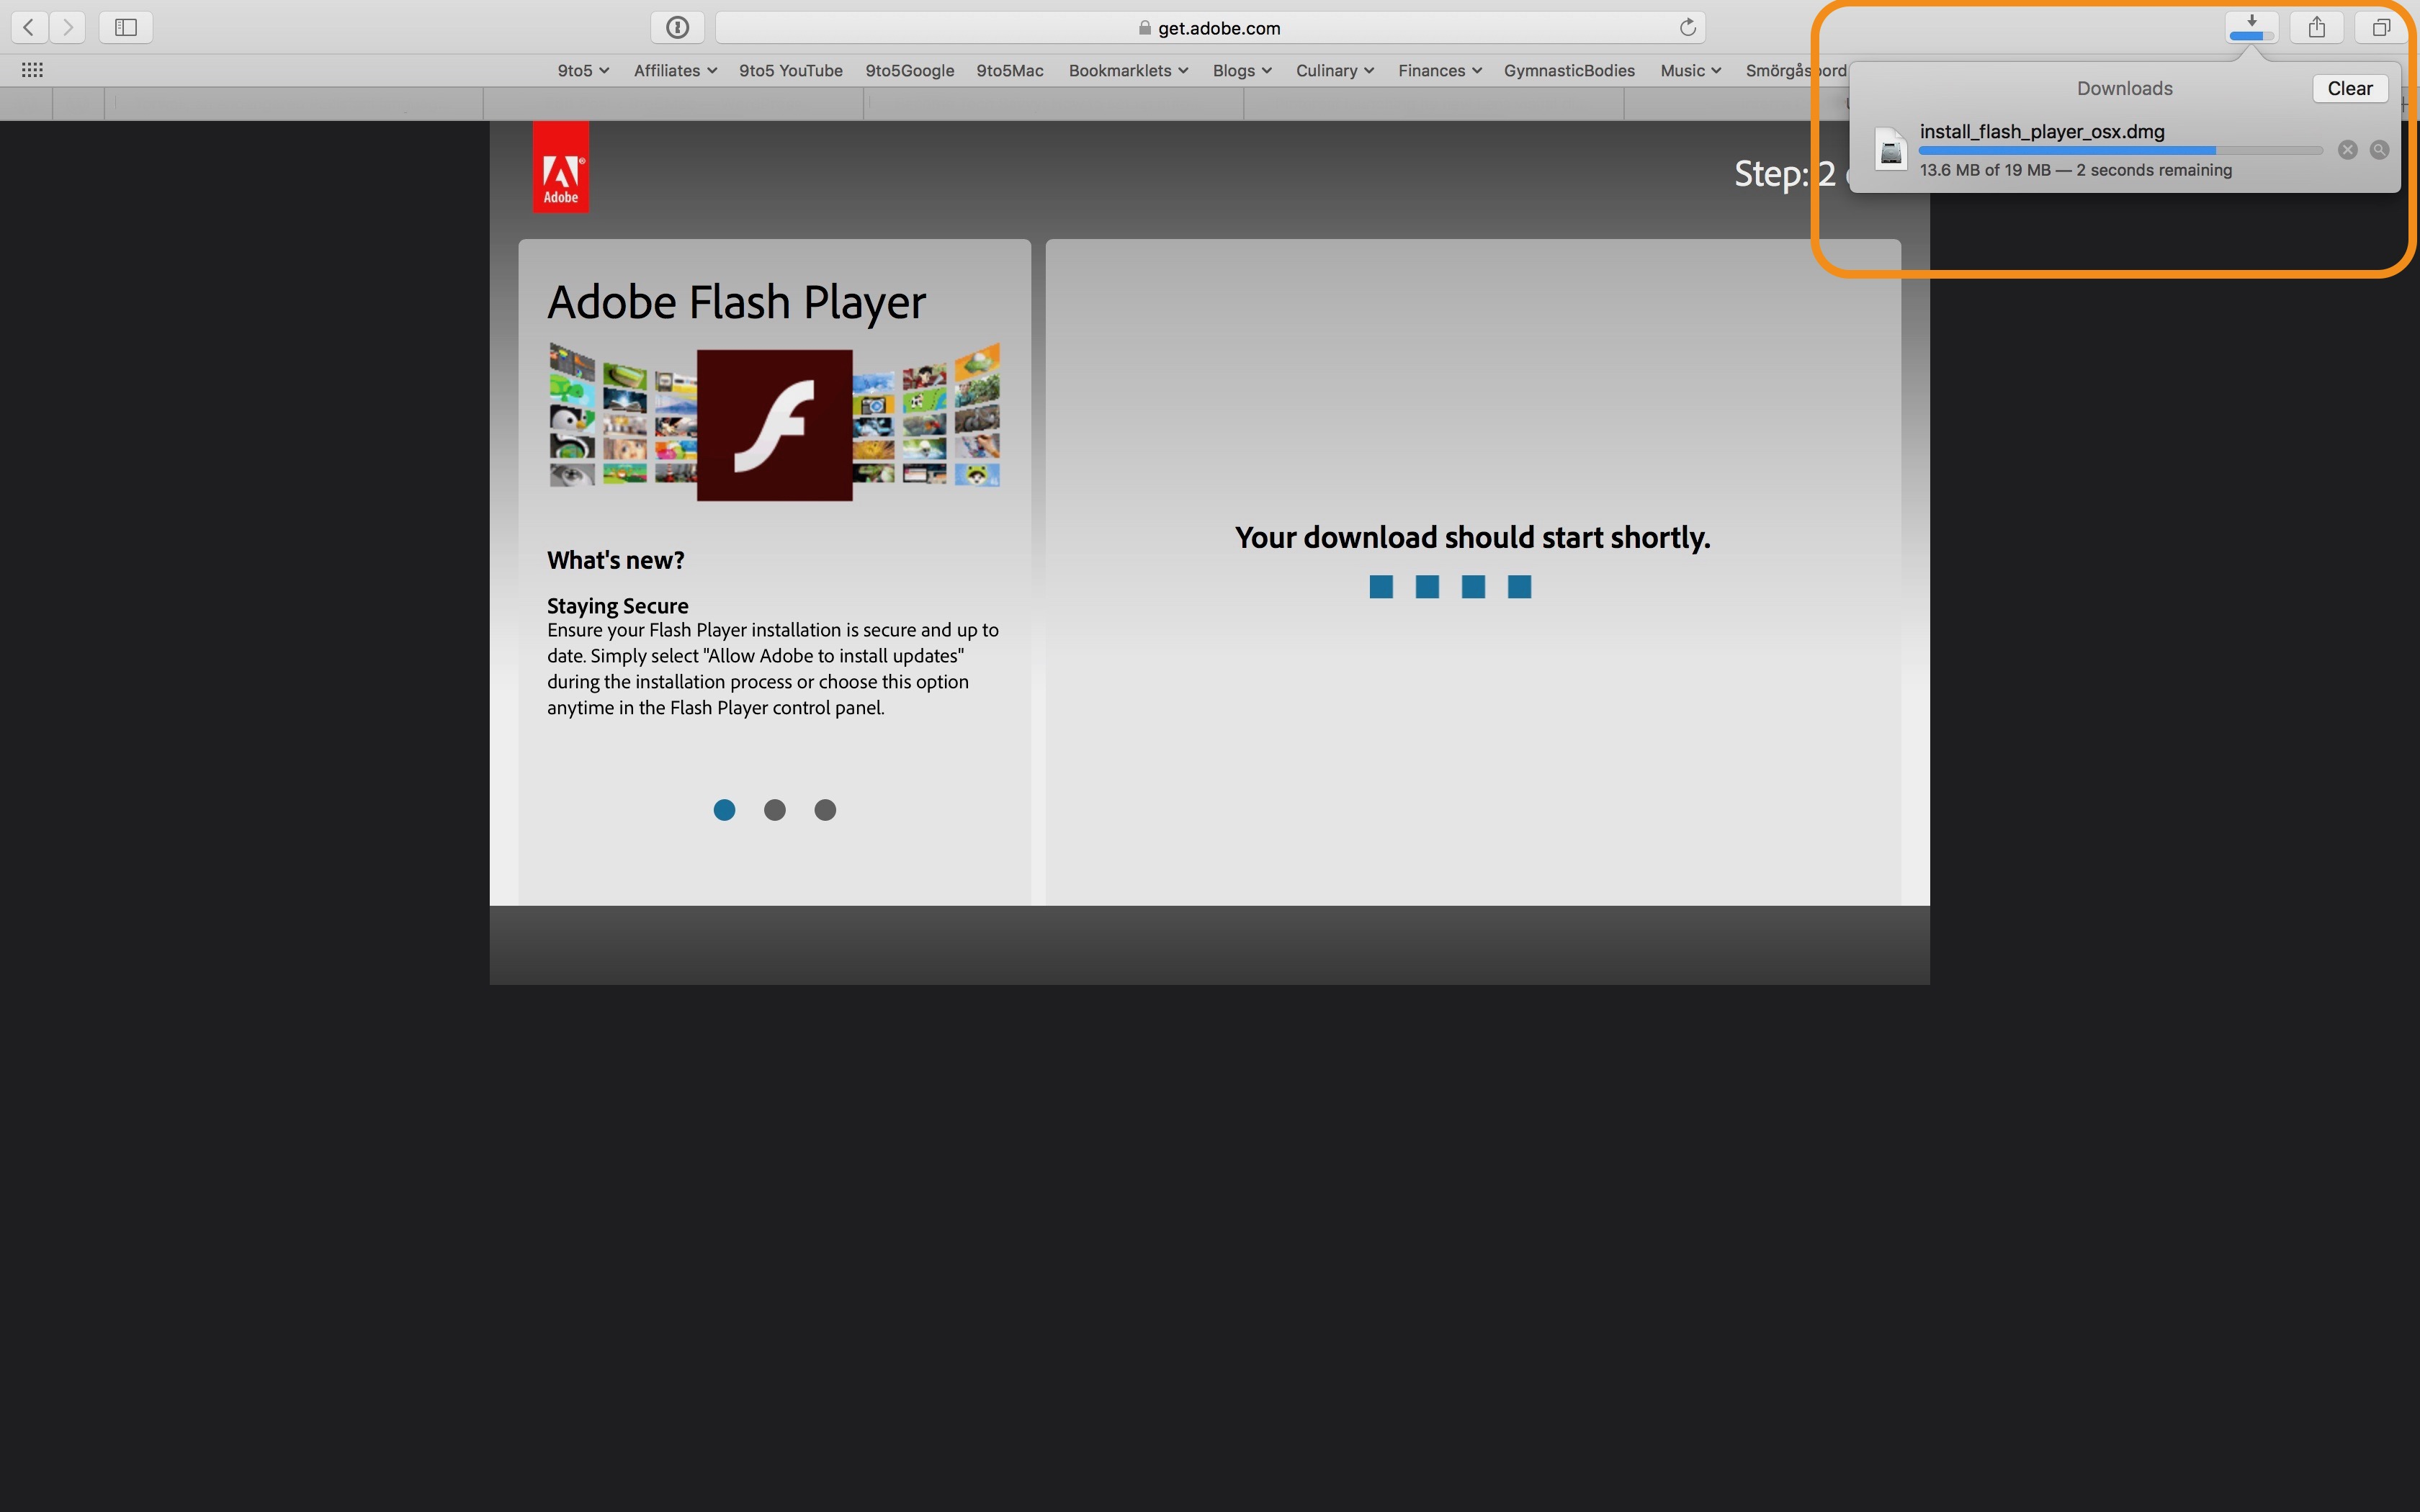 Cannot Install Newest Flash Player For Mac